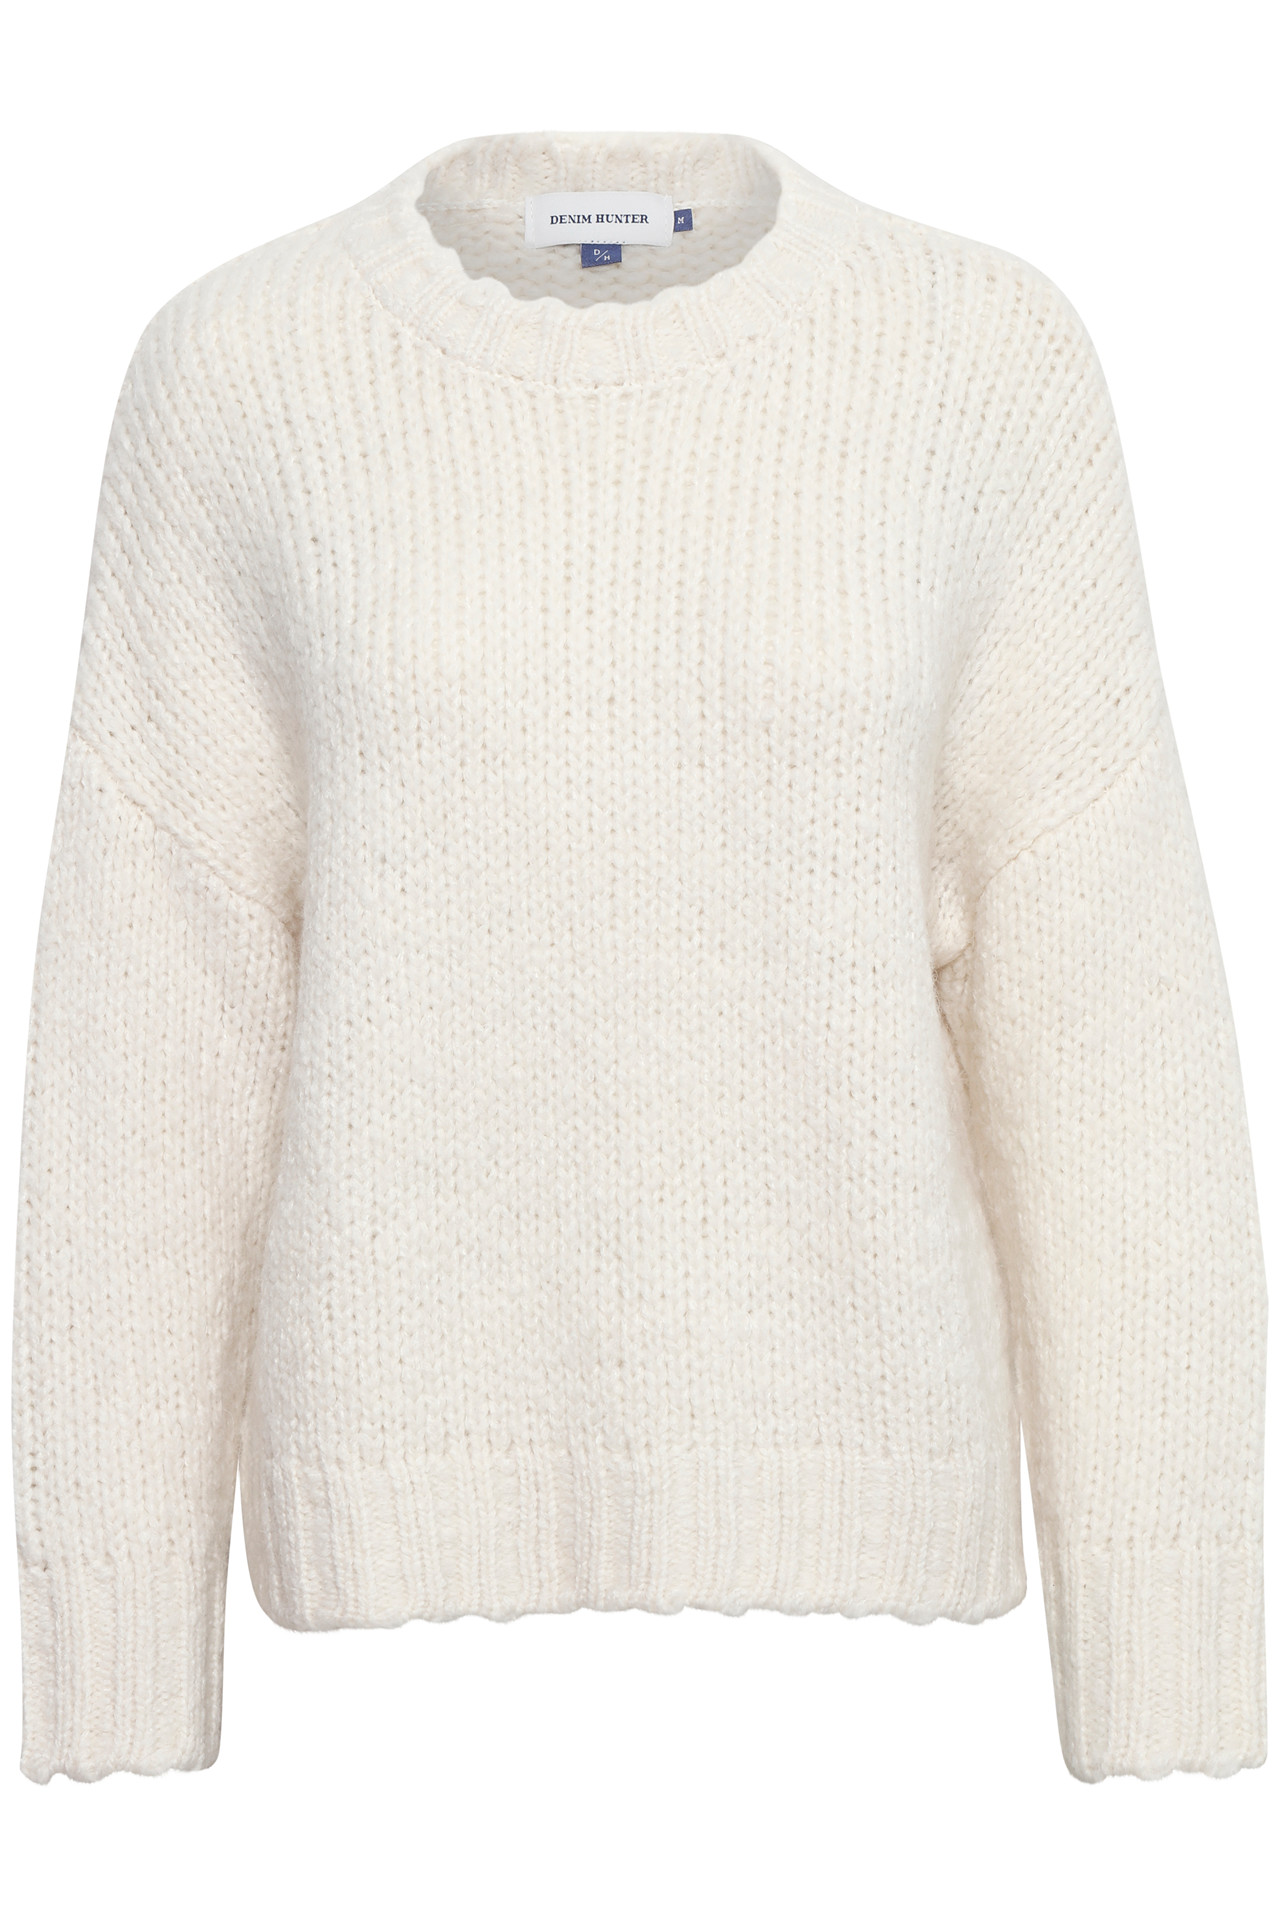 Image of   Denim Hunter DHWILLOW KNIT PULLOVER W 10702466 (Whisper White 36024, M)